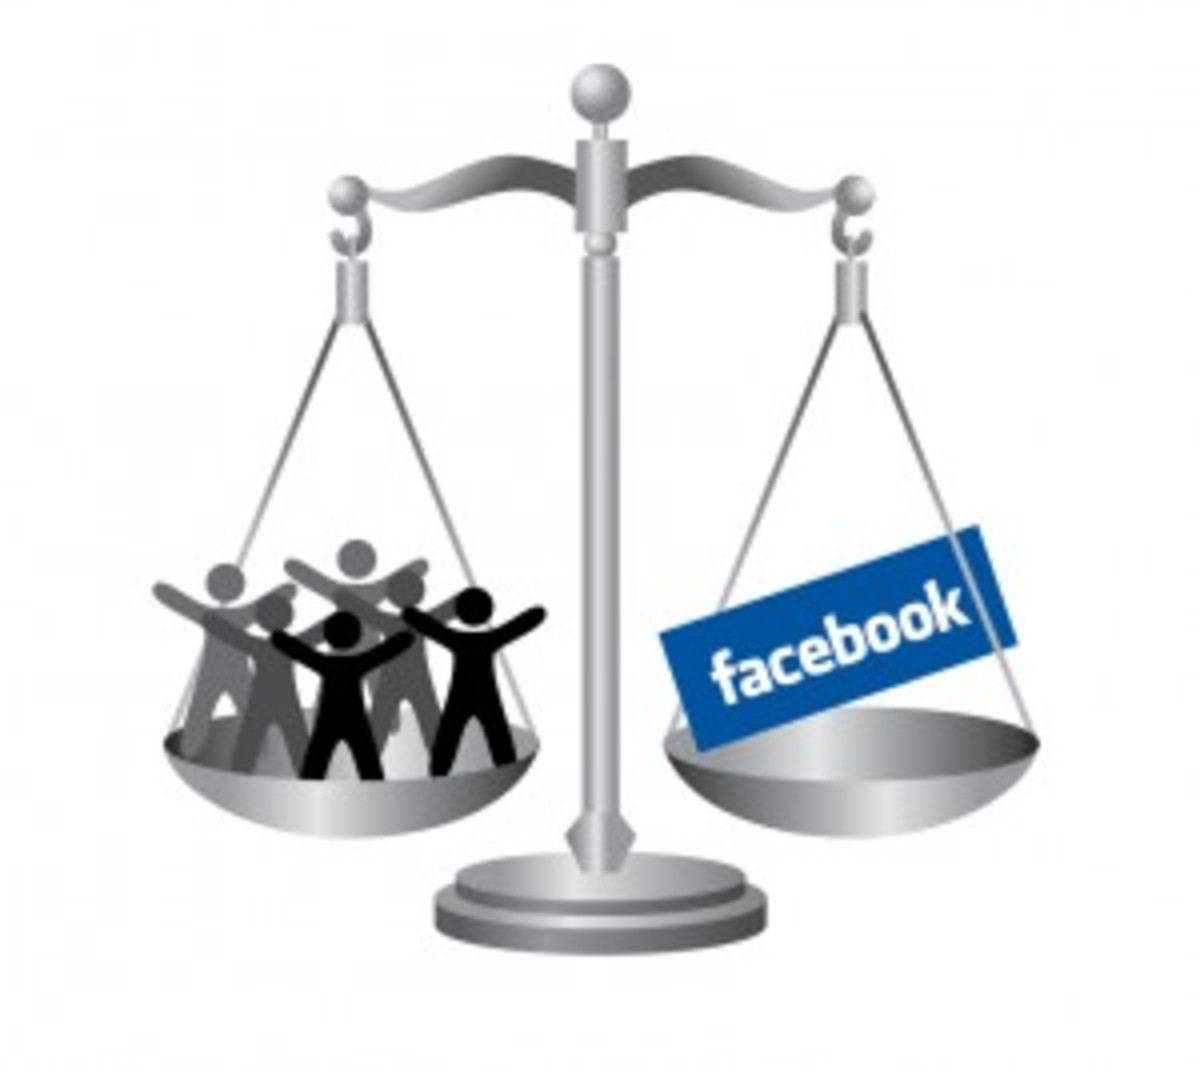 can-your-facebook-profile-be-used-against-you-in-a-court-of-law